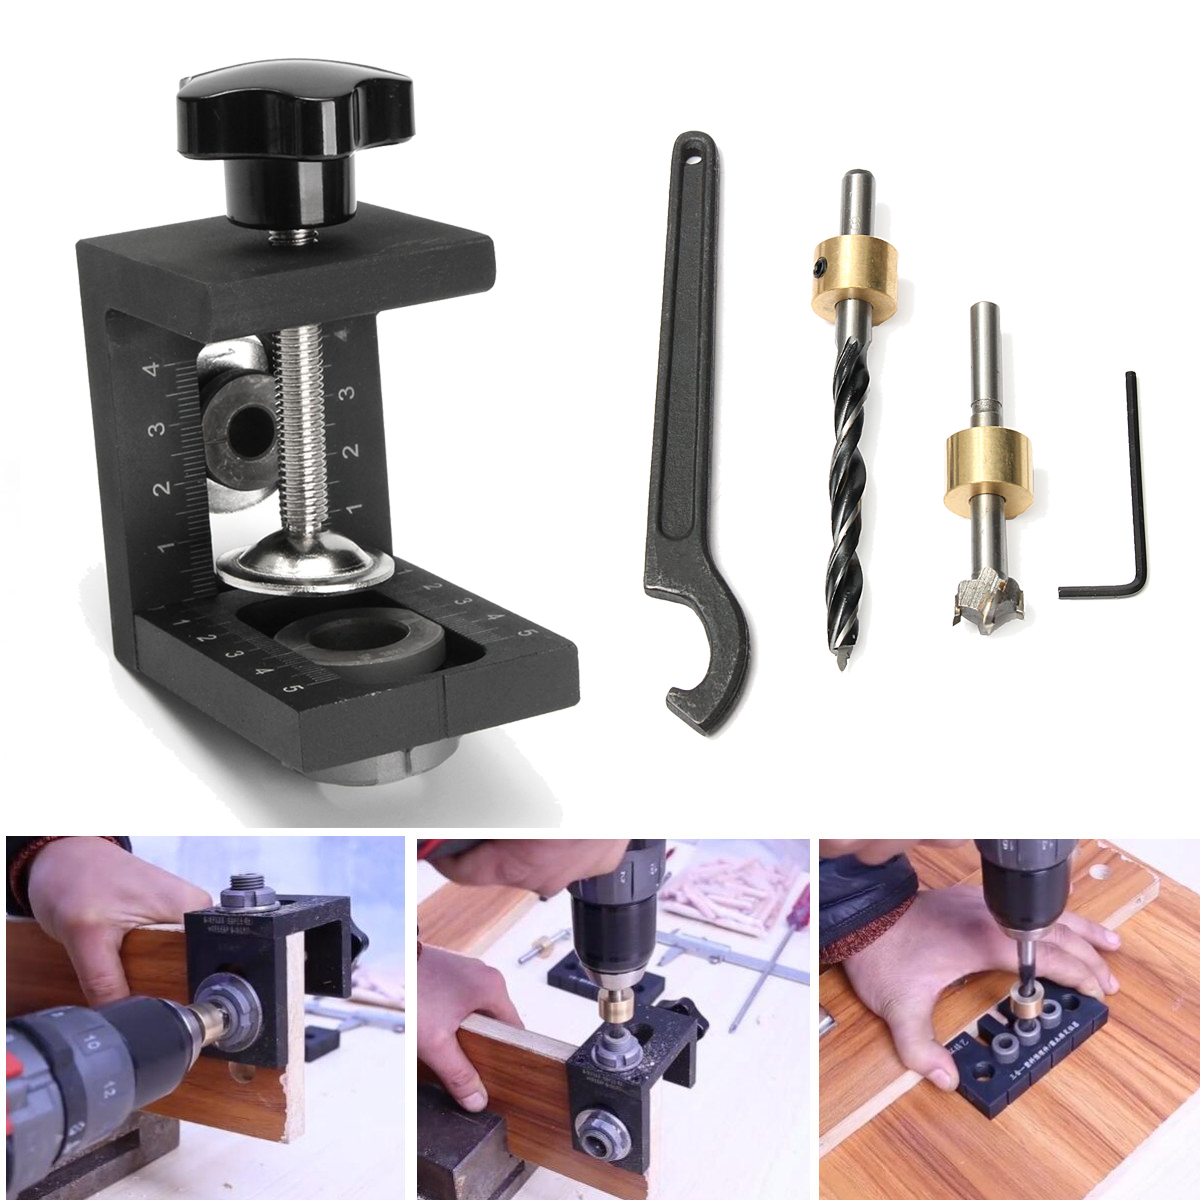 Woodworking Pocket Hole Jig Kit Step Drilling Dowelling Jig Set Carpentry Wood Dowel Drilling Guide Locator Tool 6 8 10mm conductor for drilling mini pocket hole jig woodworking drill guide set locator dowel jig guide power tools